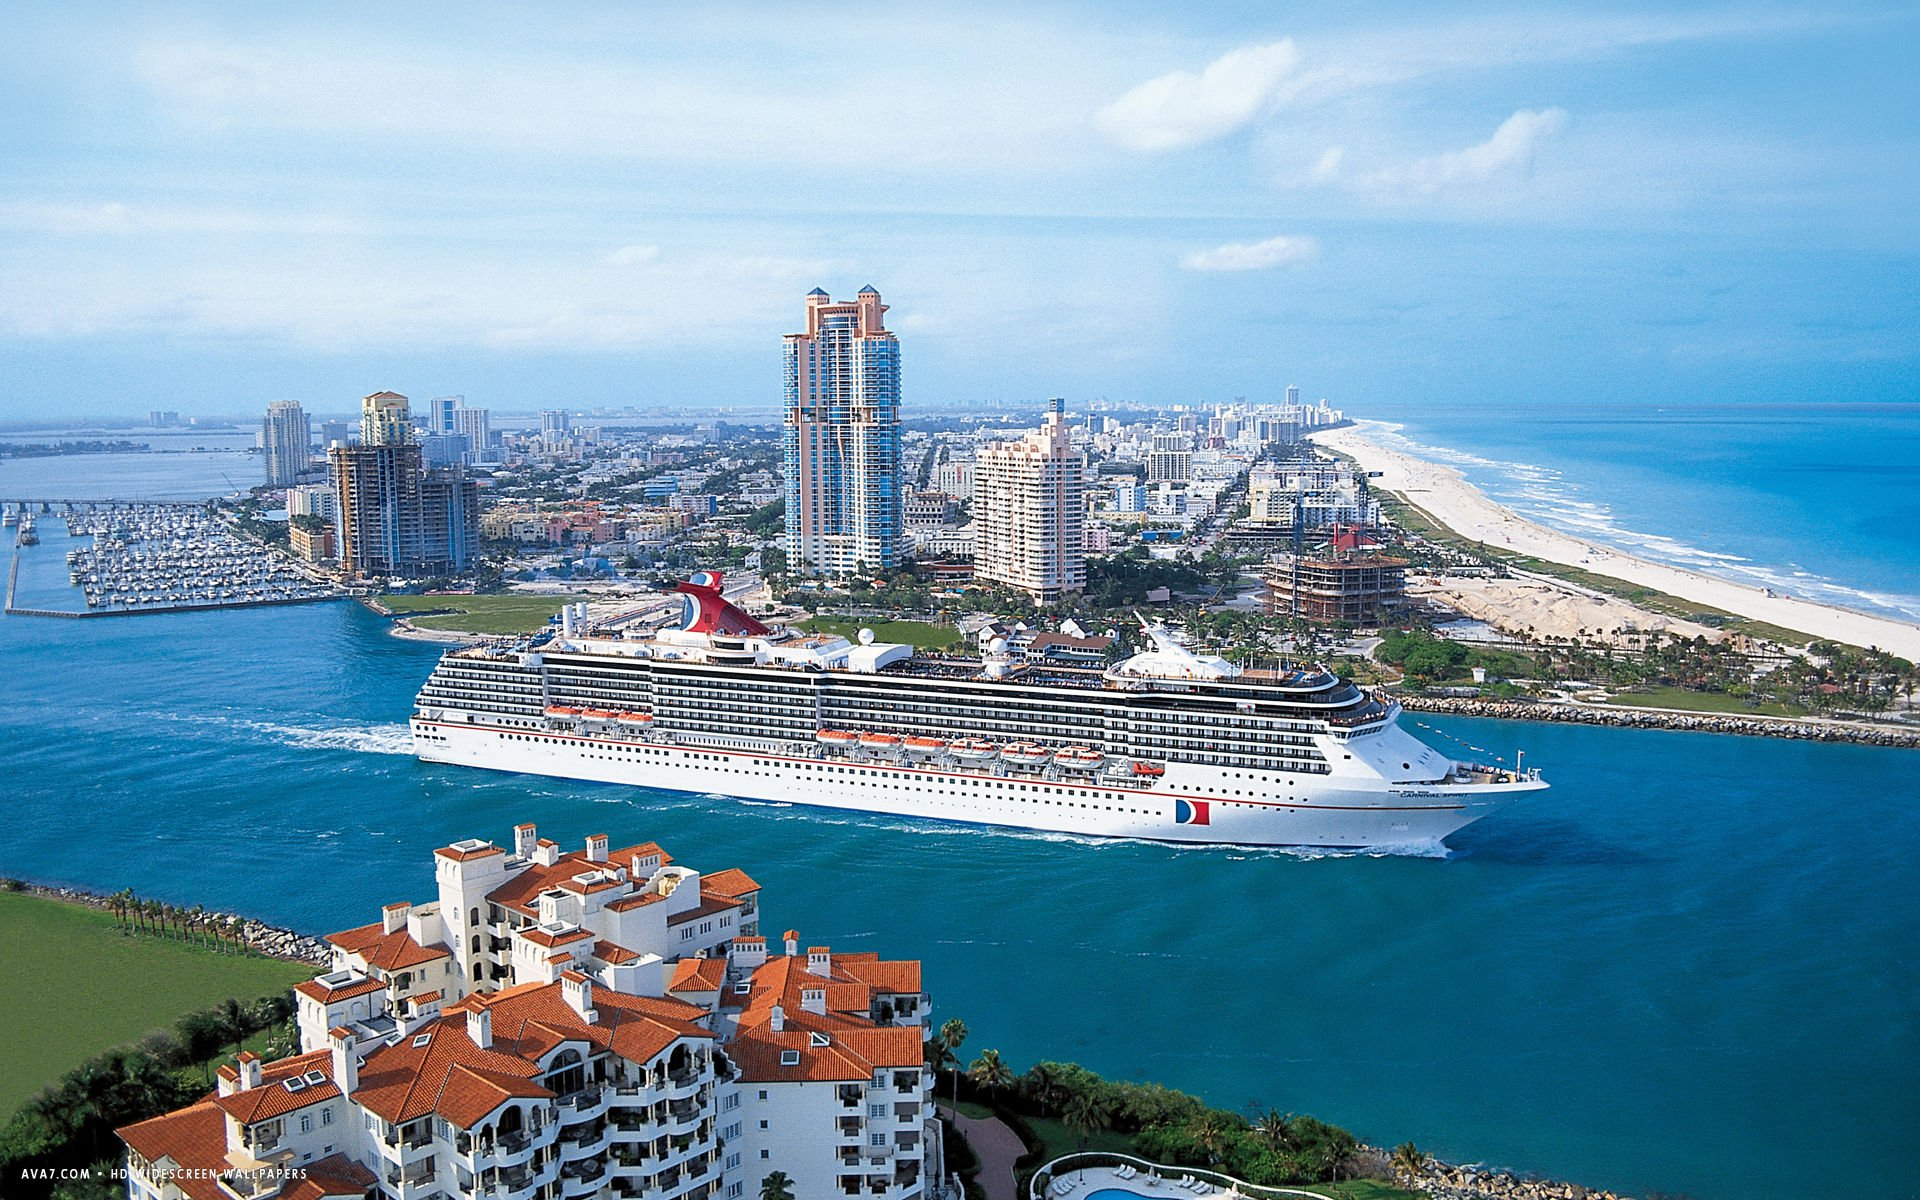 carnival spirit cruise ship hd widescreen wallpaper cruise ships 1920x1200